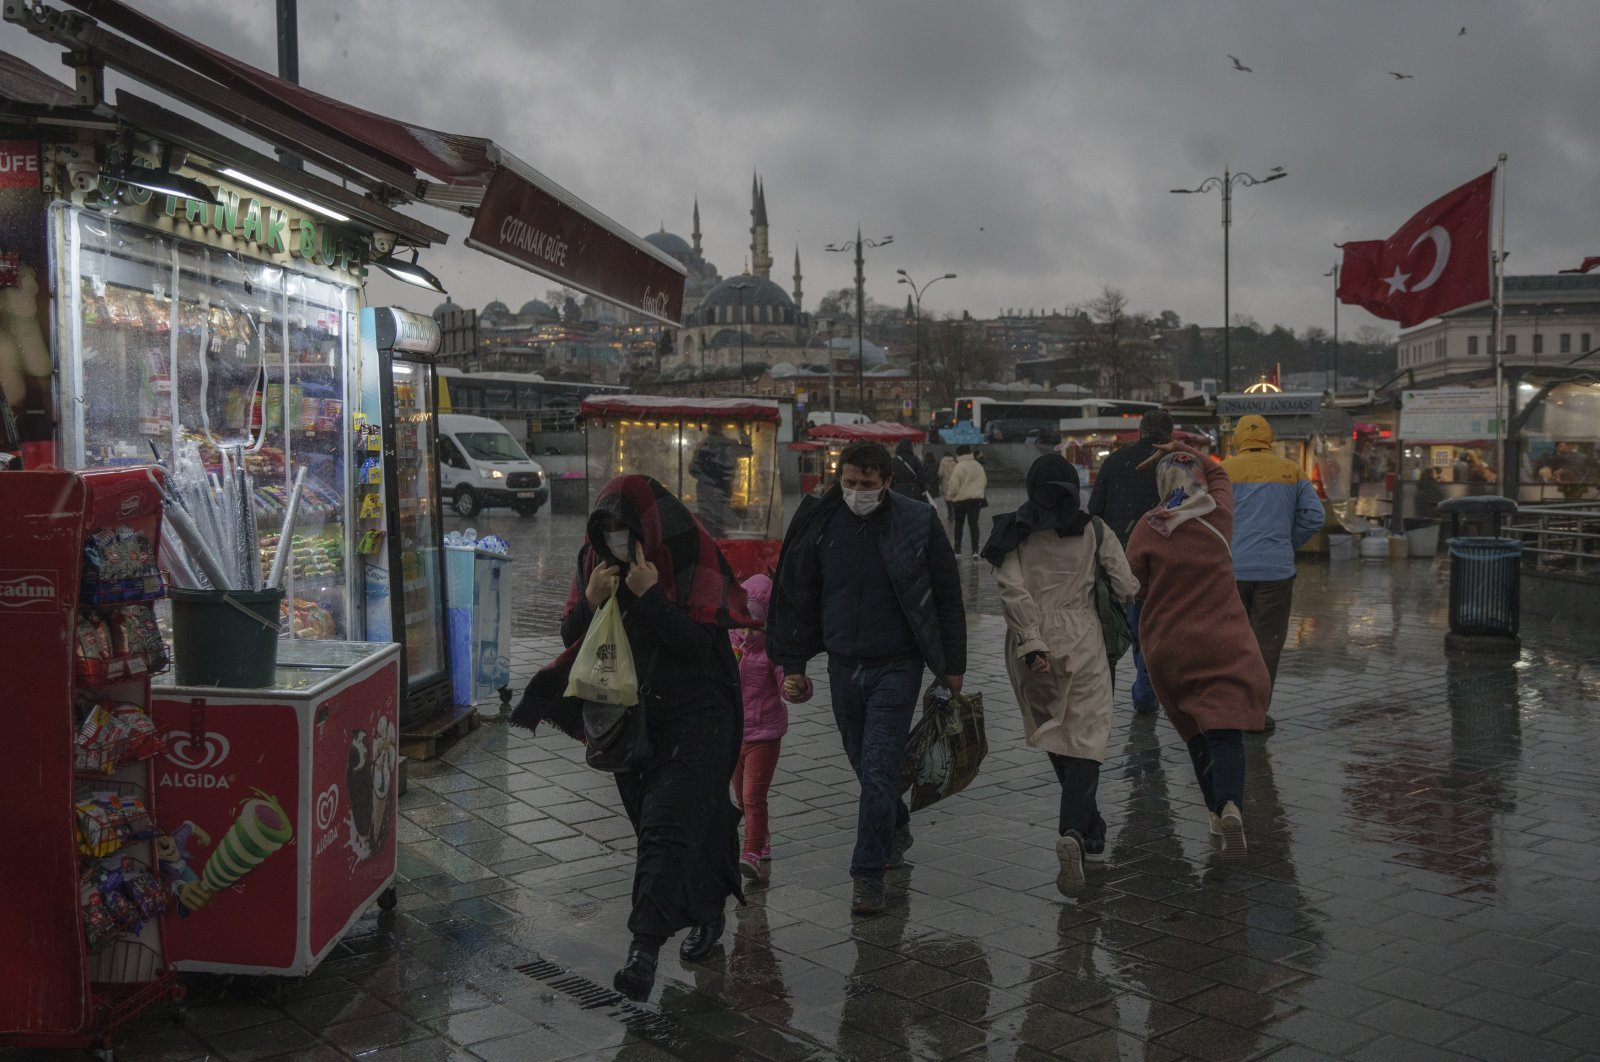 People walk during heavy rainfall in Istanbul's historic Eminönü district on Mar. 22, 2021 (DHA Photo)